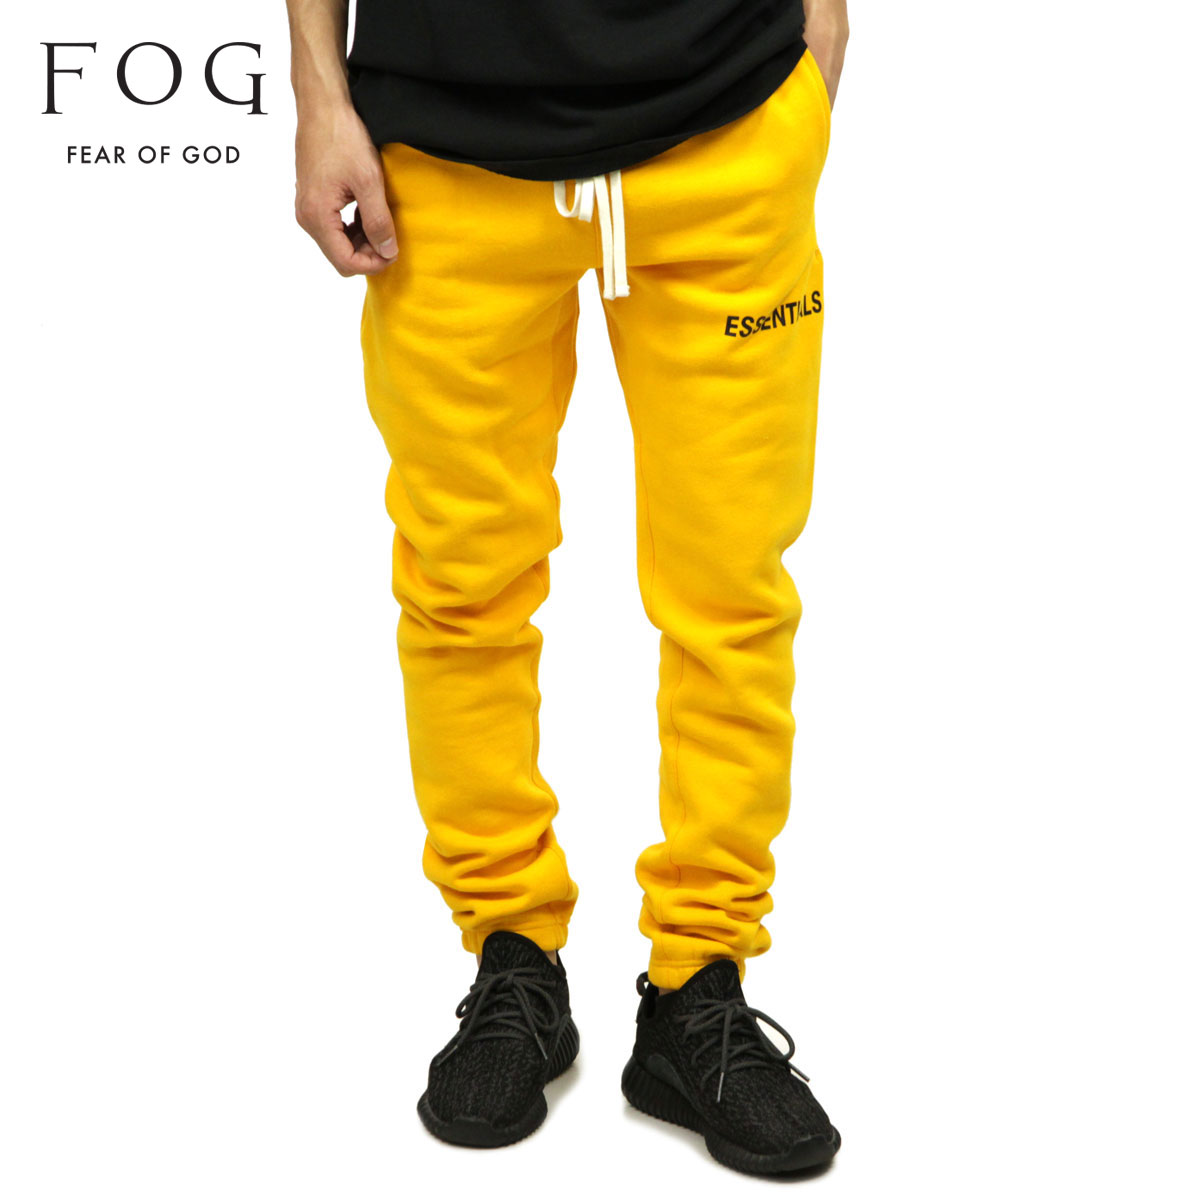 favorable price hot sale purchase authentic Fear of god sweat shirt men's regular article FEAR OF GOD trainer underwear  FOG - FEAR OF GOD ESSENTIALS GRAPHIC SWEATPANTS YELLOW